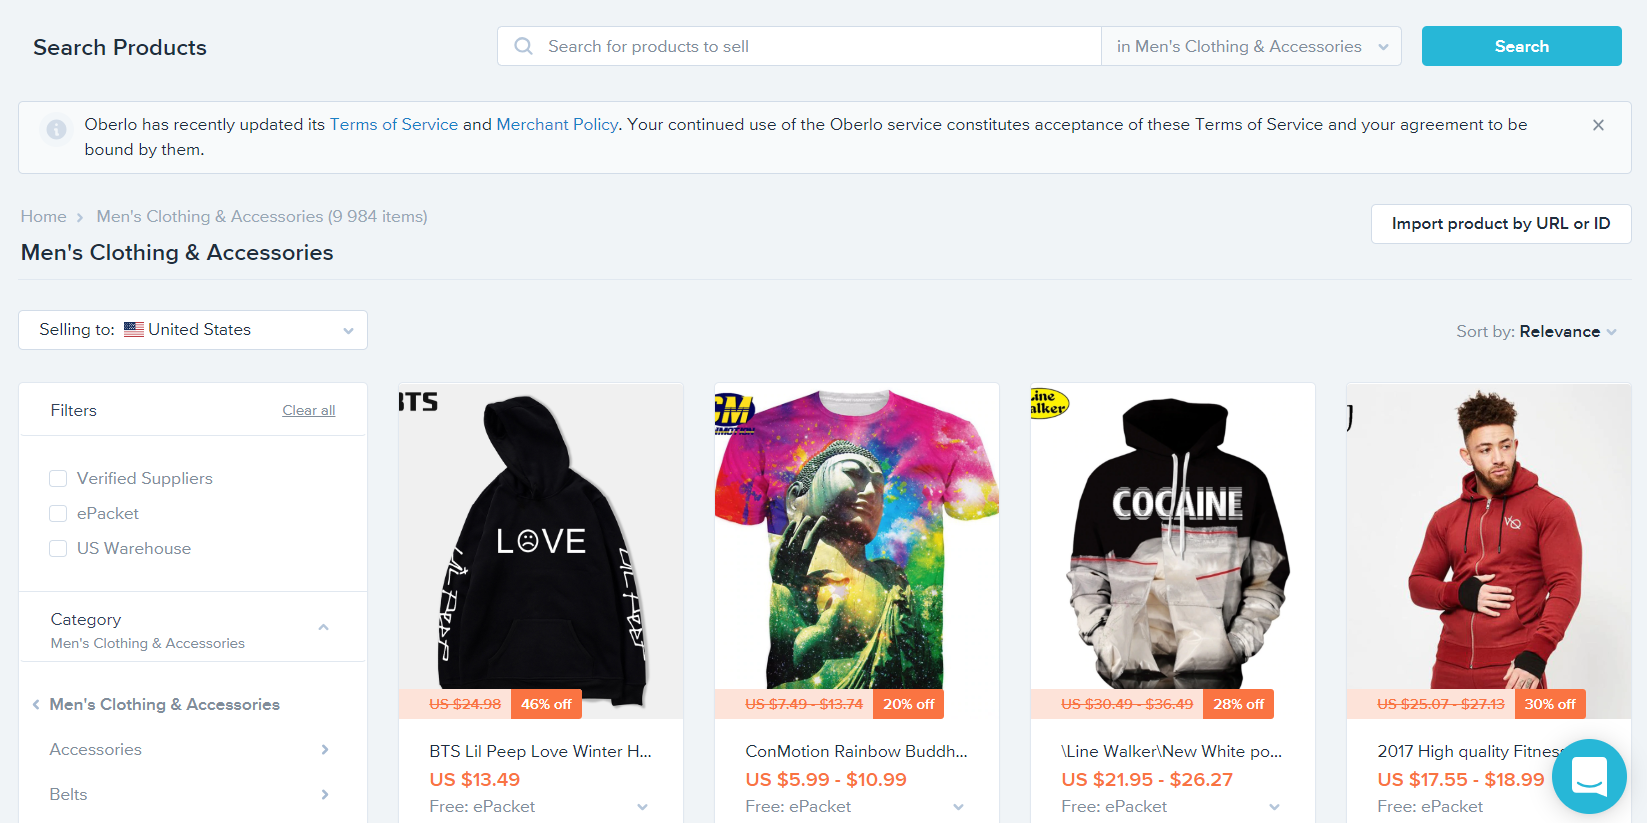 how to start a business online for clothing - Oberlo is a website where online retailers find wholesale suppliers. You can use it for conducting trending products research.